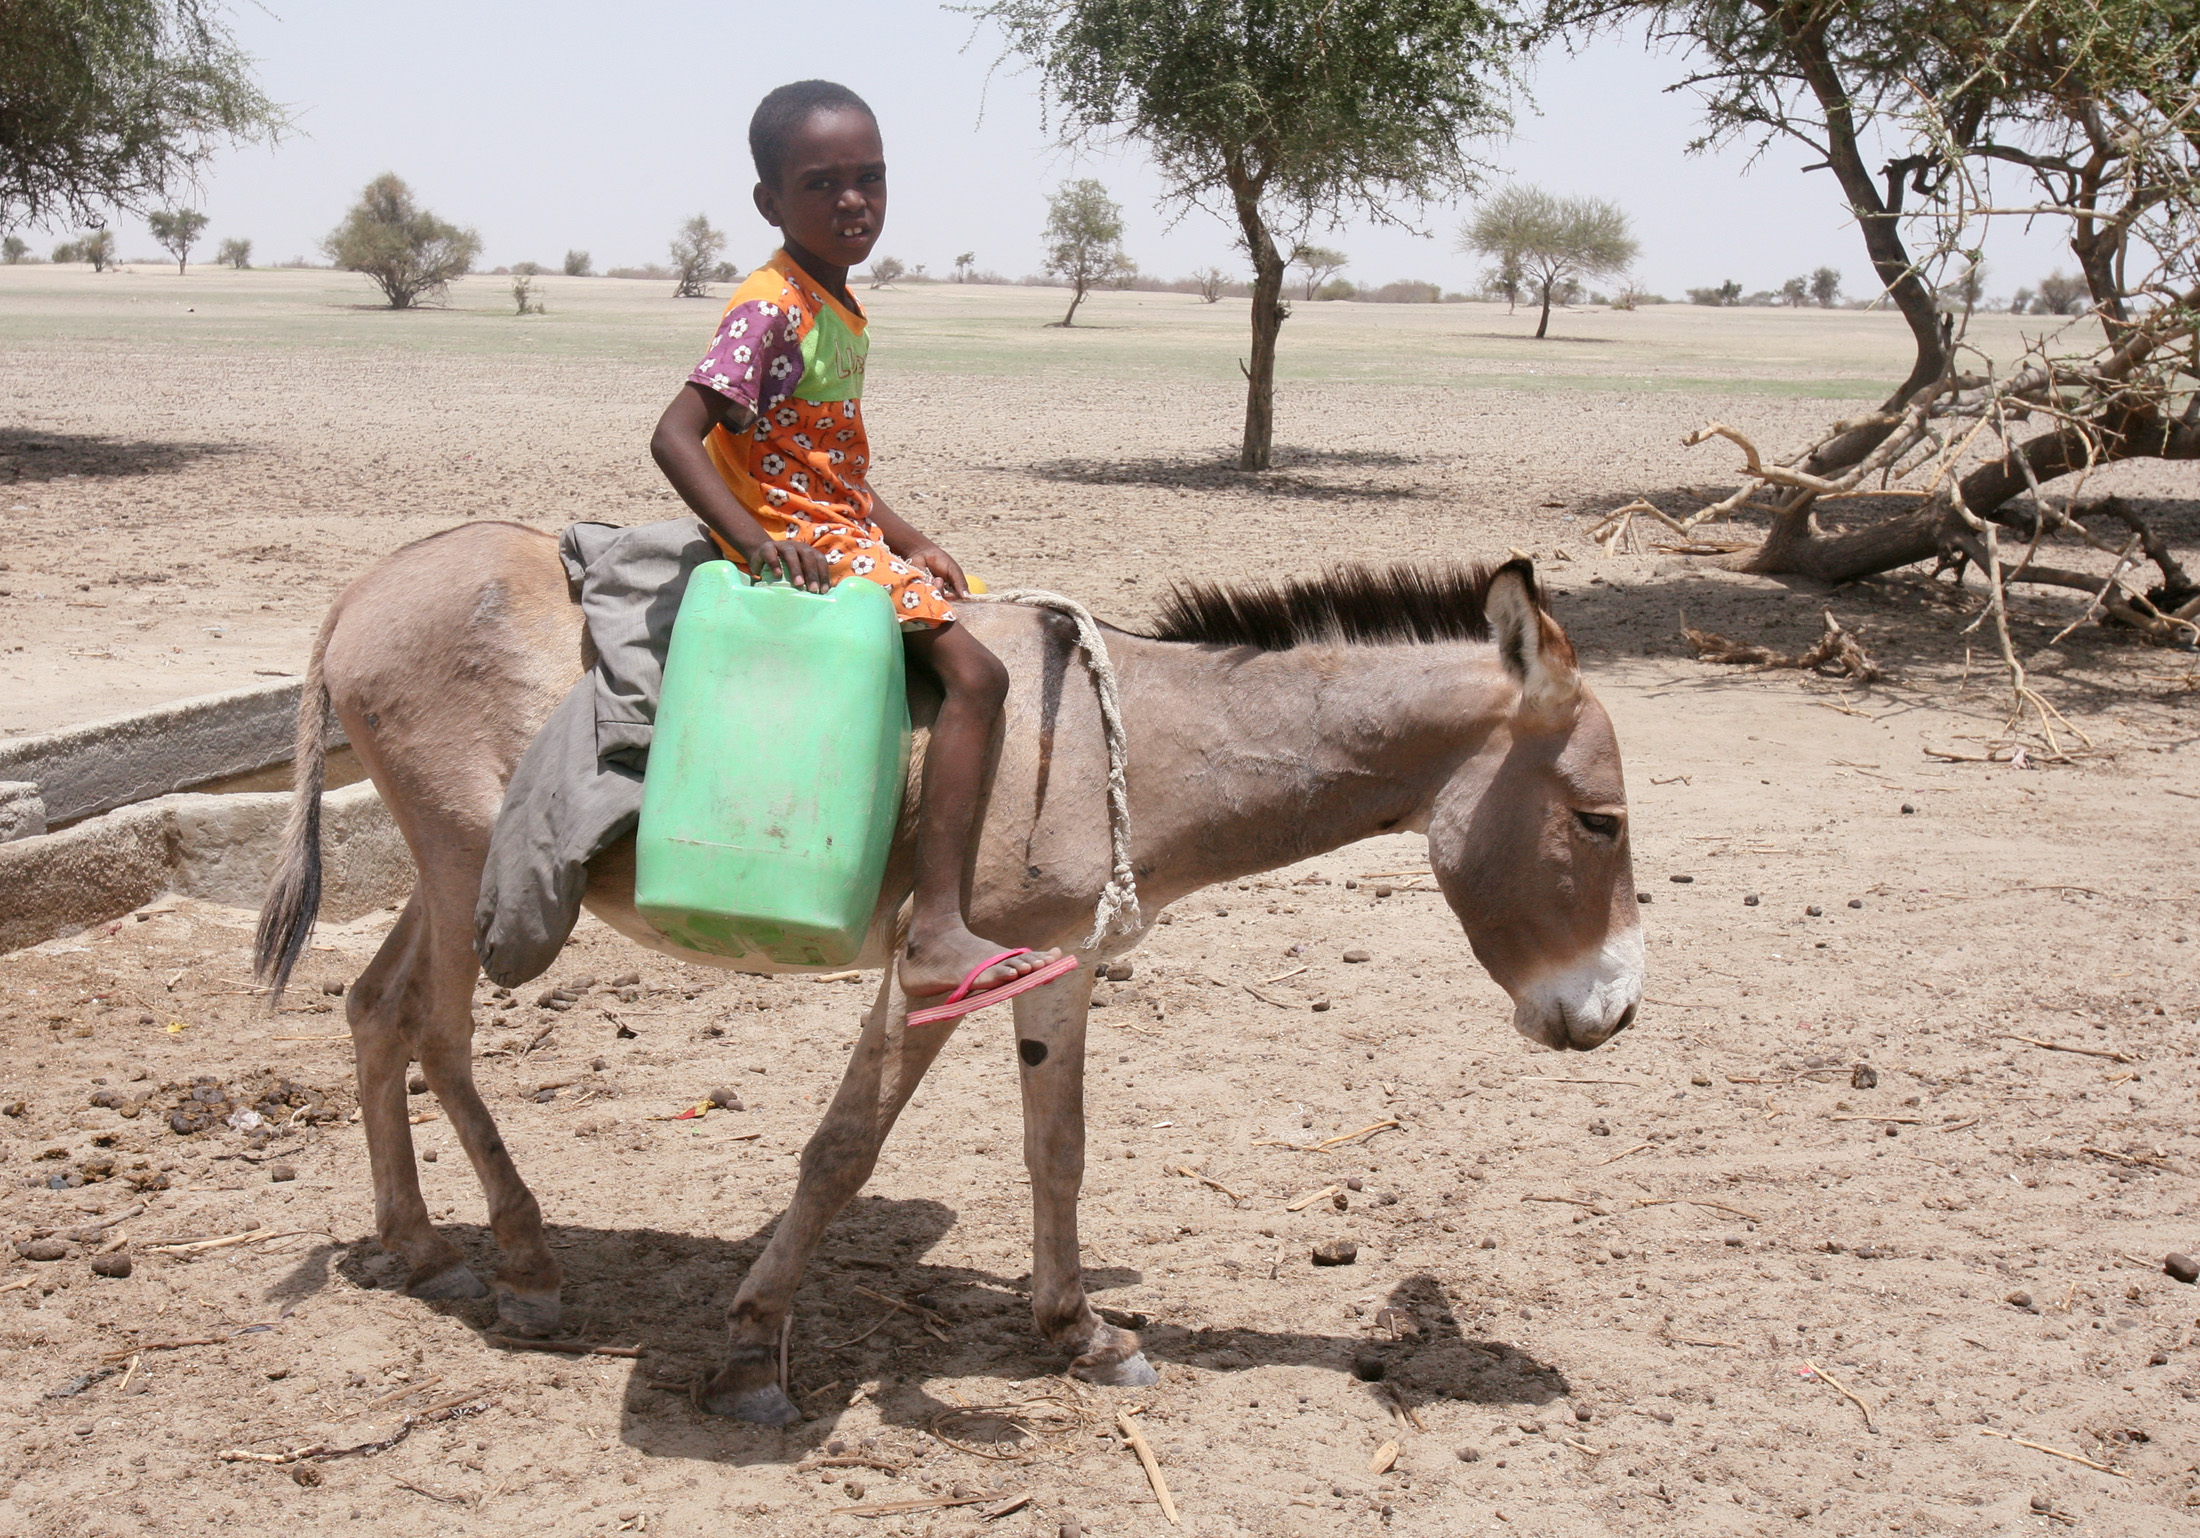 A young boy goes in search of water in the western Chad region of Bahr-el-Ghazal. Chad is mostly rural with access to water and infrastructure limited